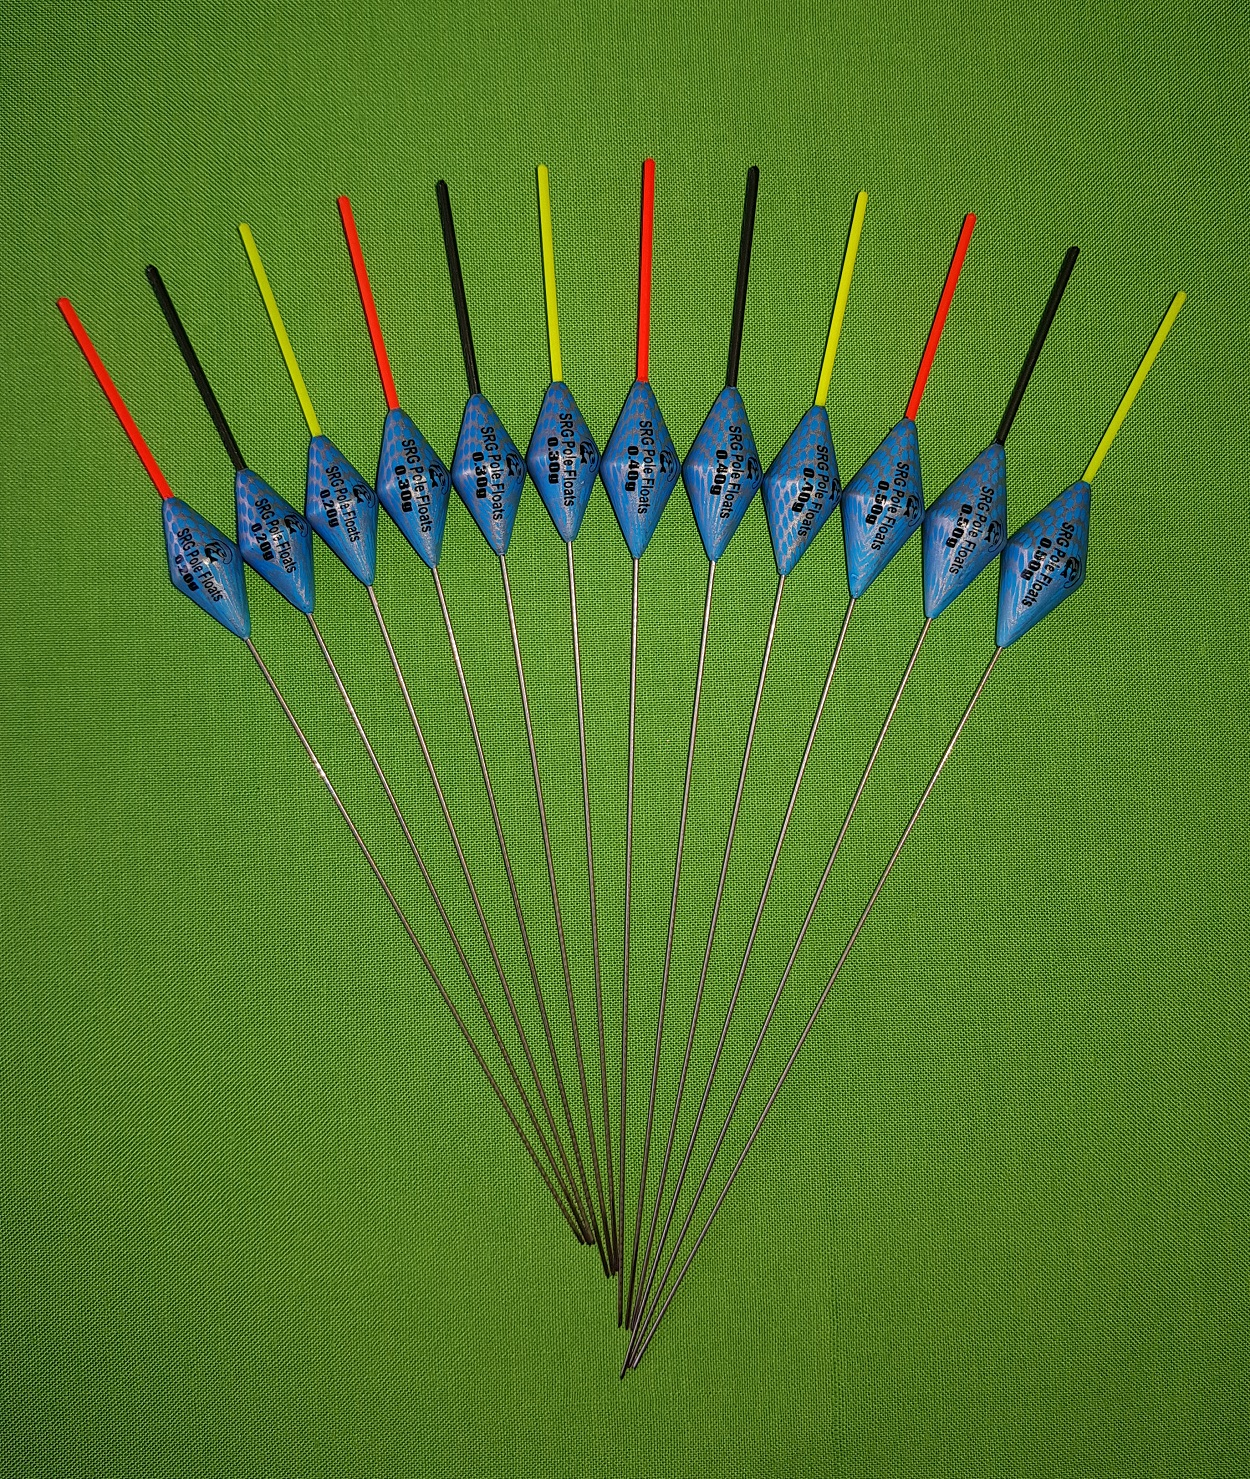 Pack 330R12 *BARGAIN* 12 x Assorted High Quality Pole Fishing Floats